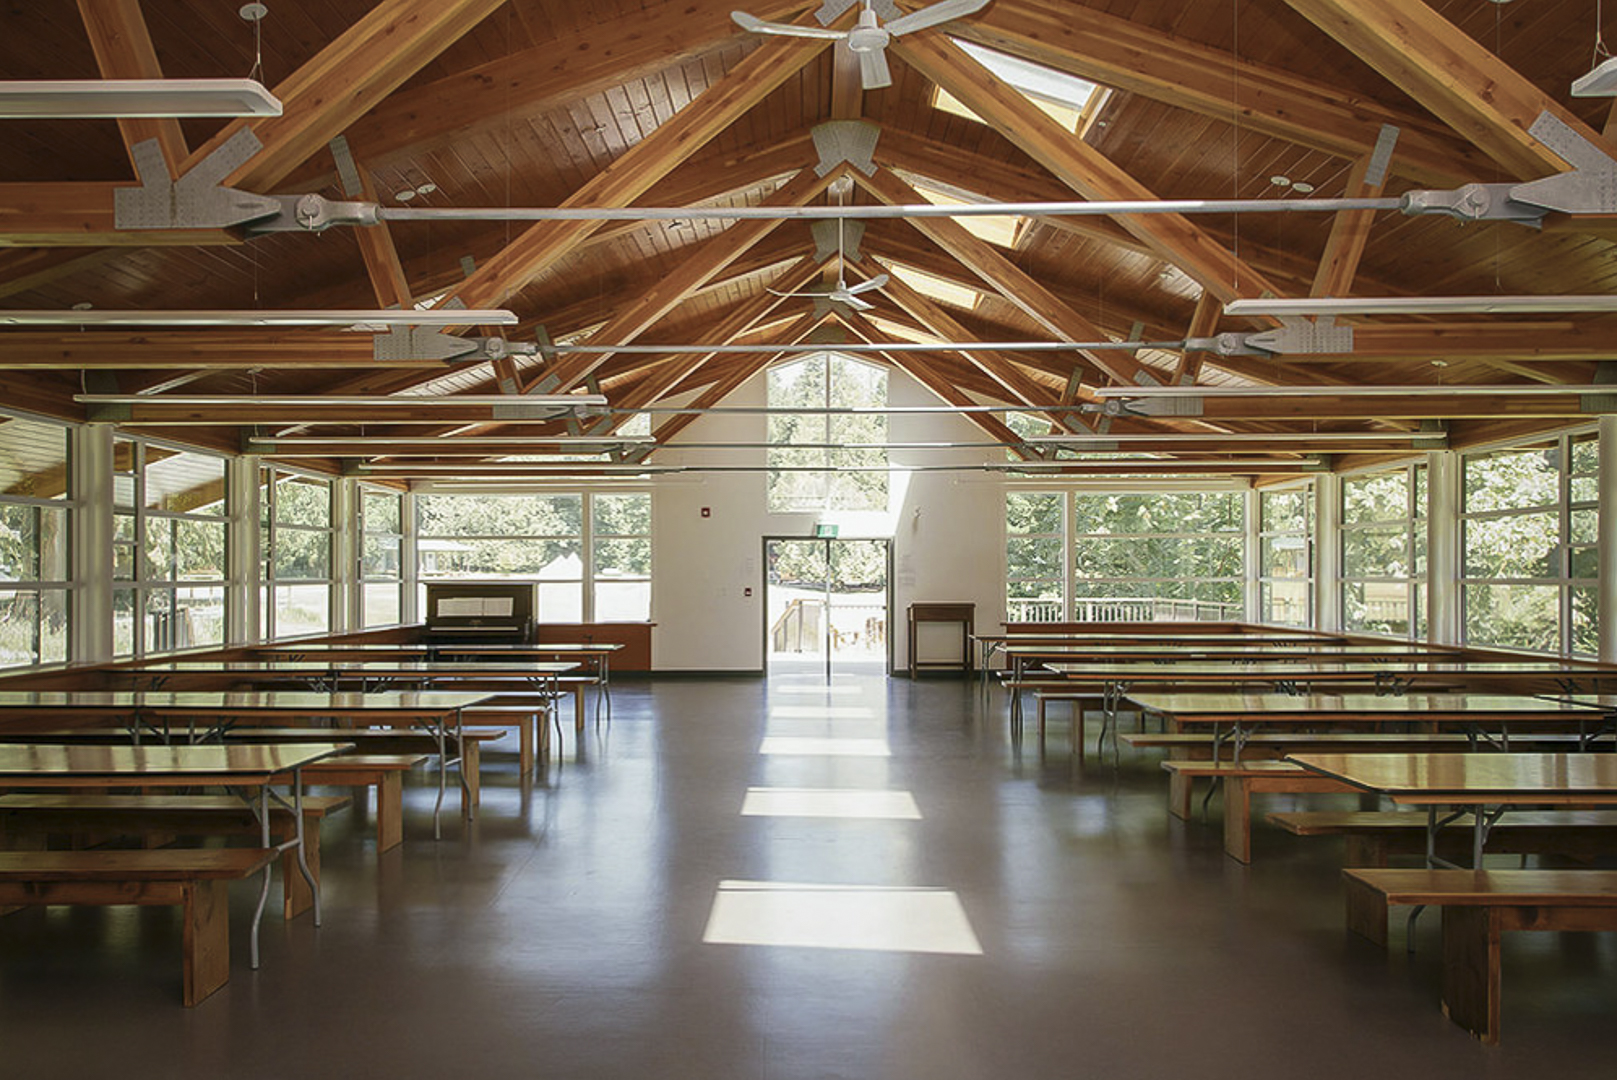 Fircom_Dining_Hall_Completed_Project_Web-7.jpg